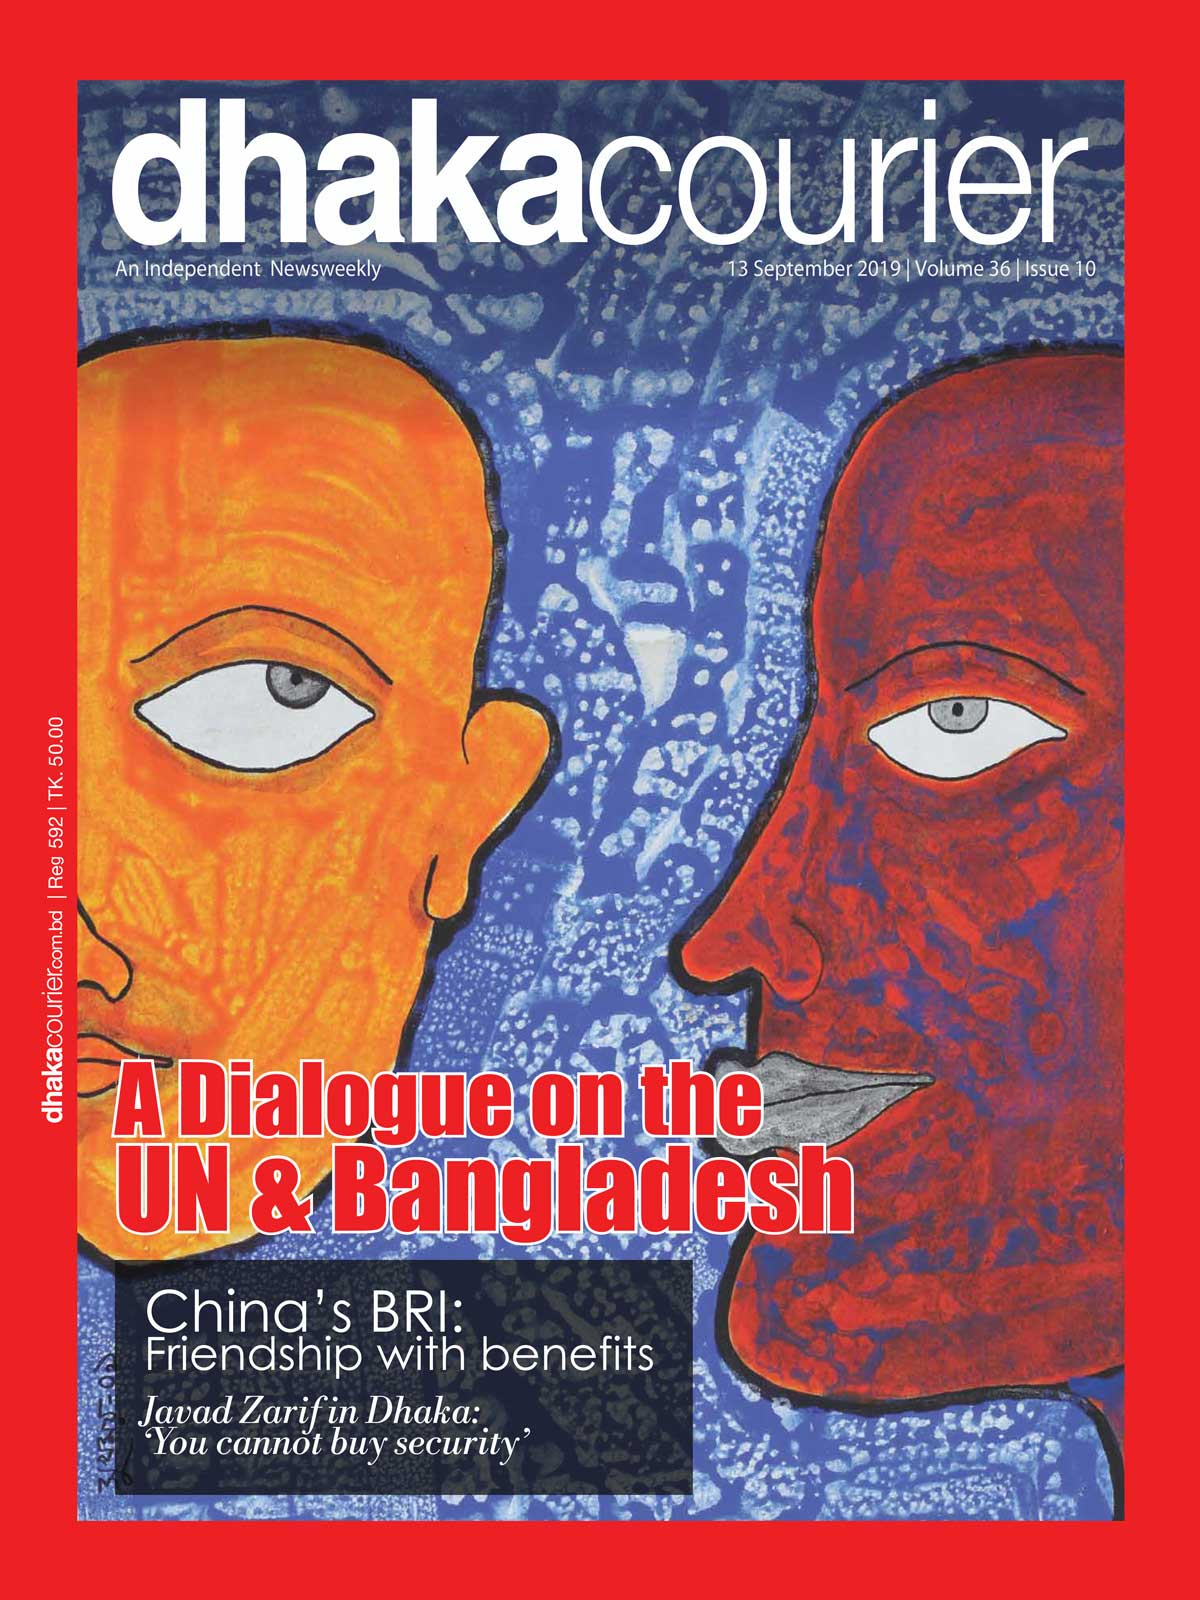 DhakaCourier Vol 36 Issue 10